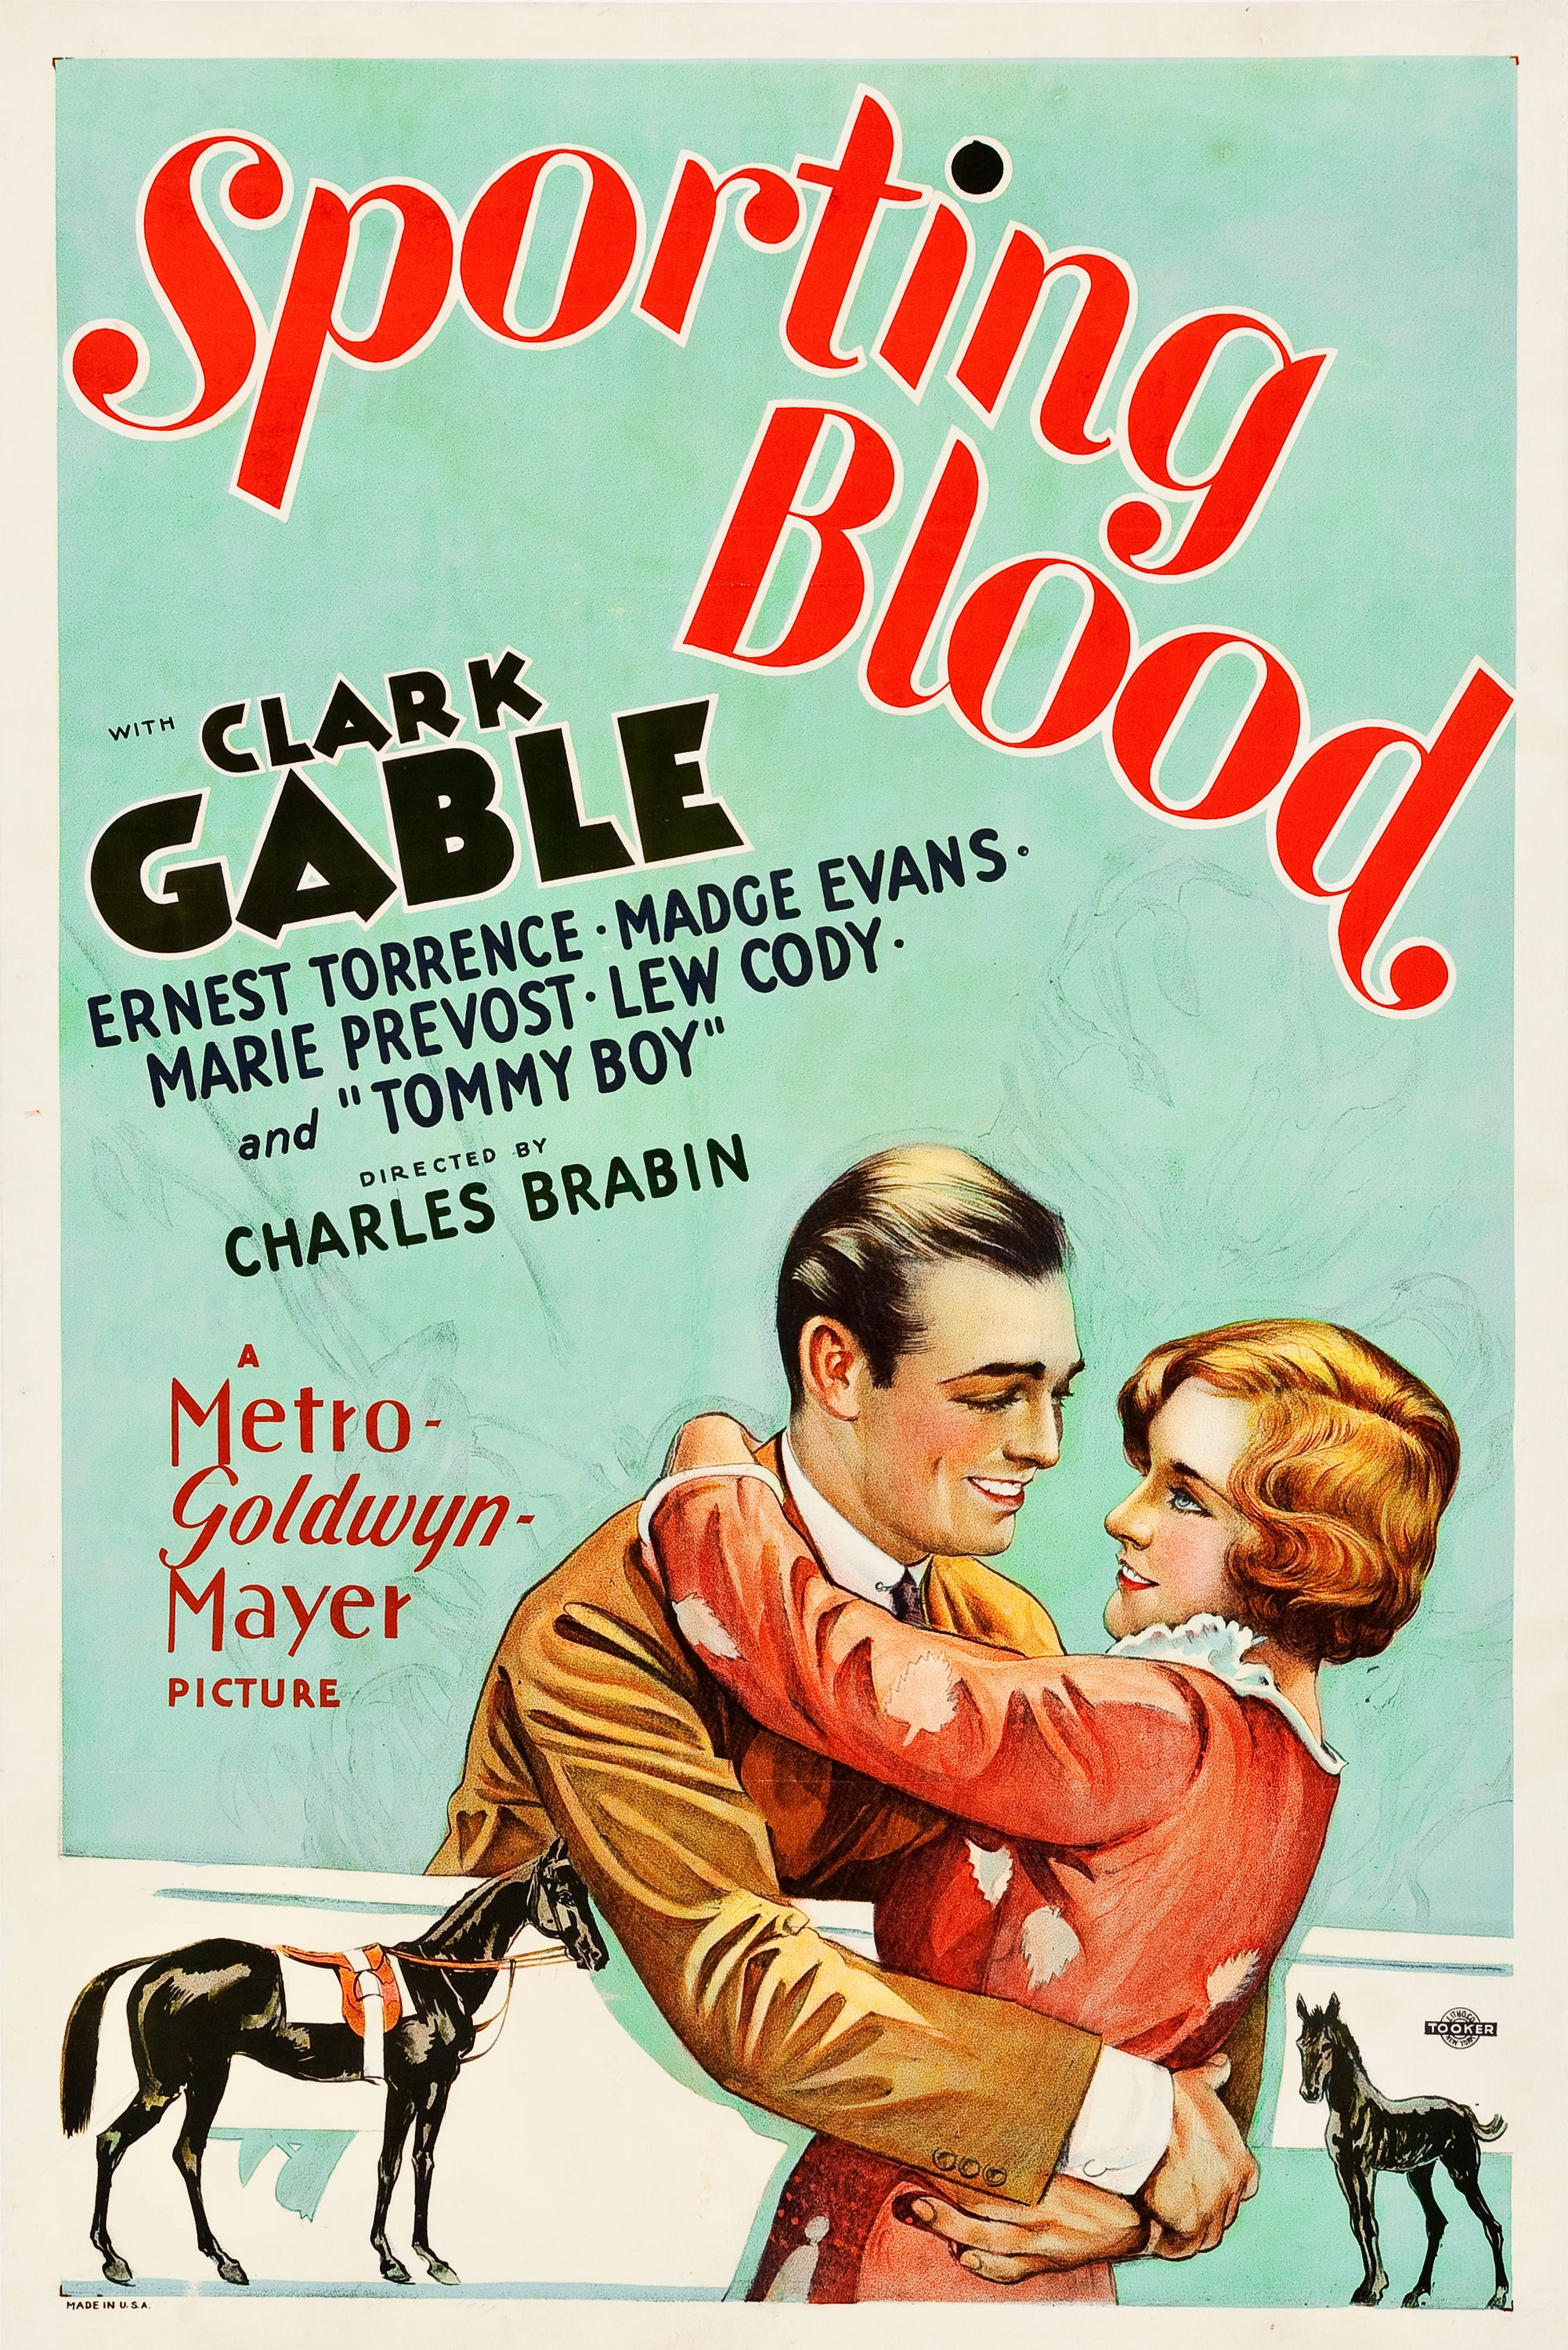 The History Blog » Blog Archive » Movie posters found ...